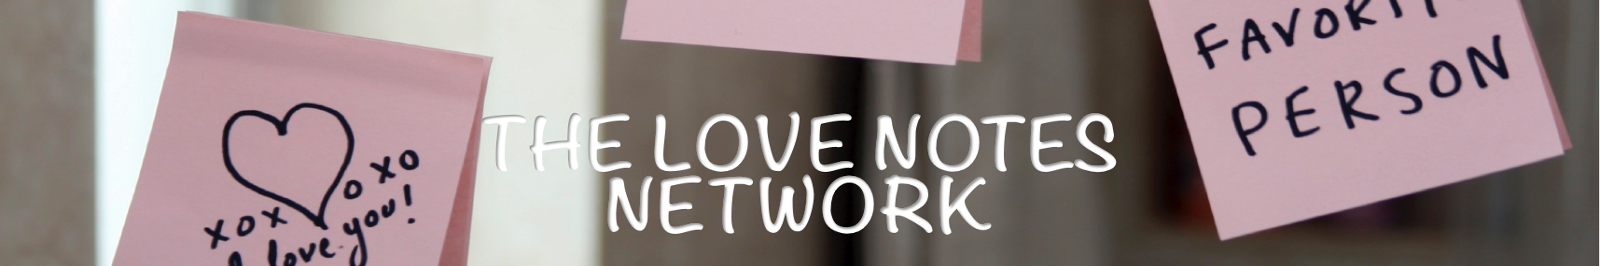 The Love Notes Network